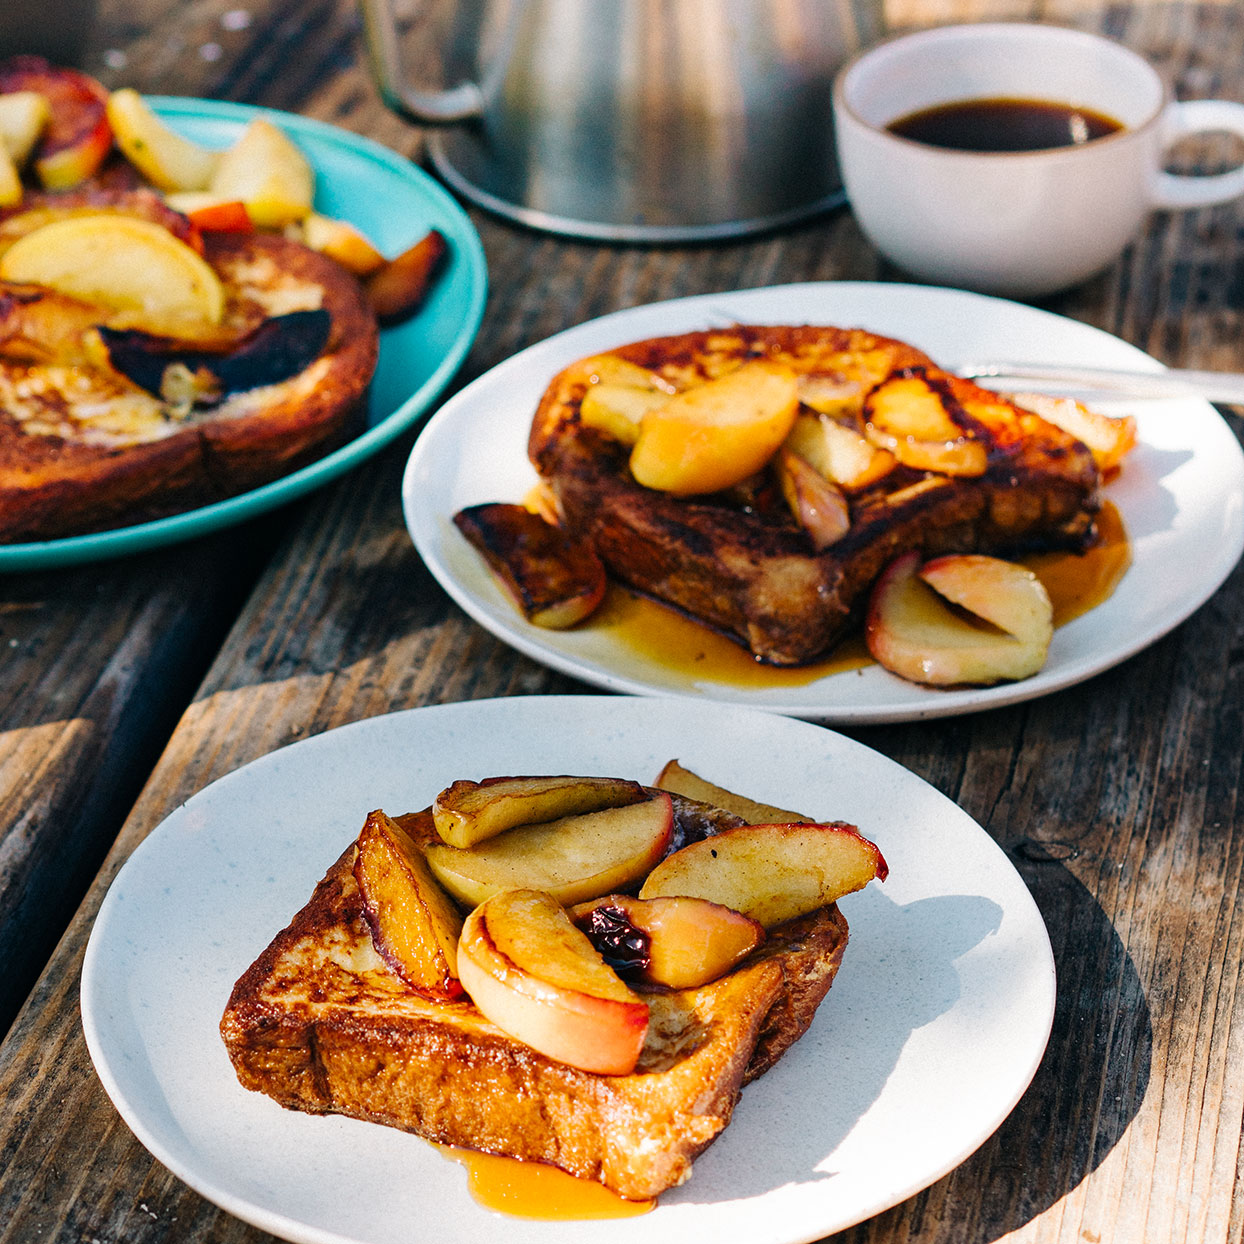 Brioche French Toast with Griddled Apples Trusted Brands